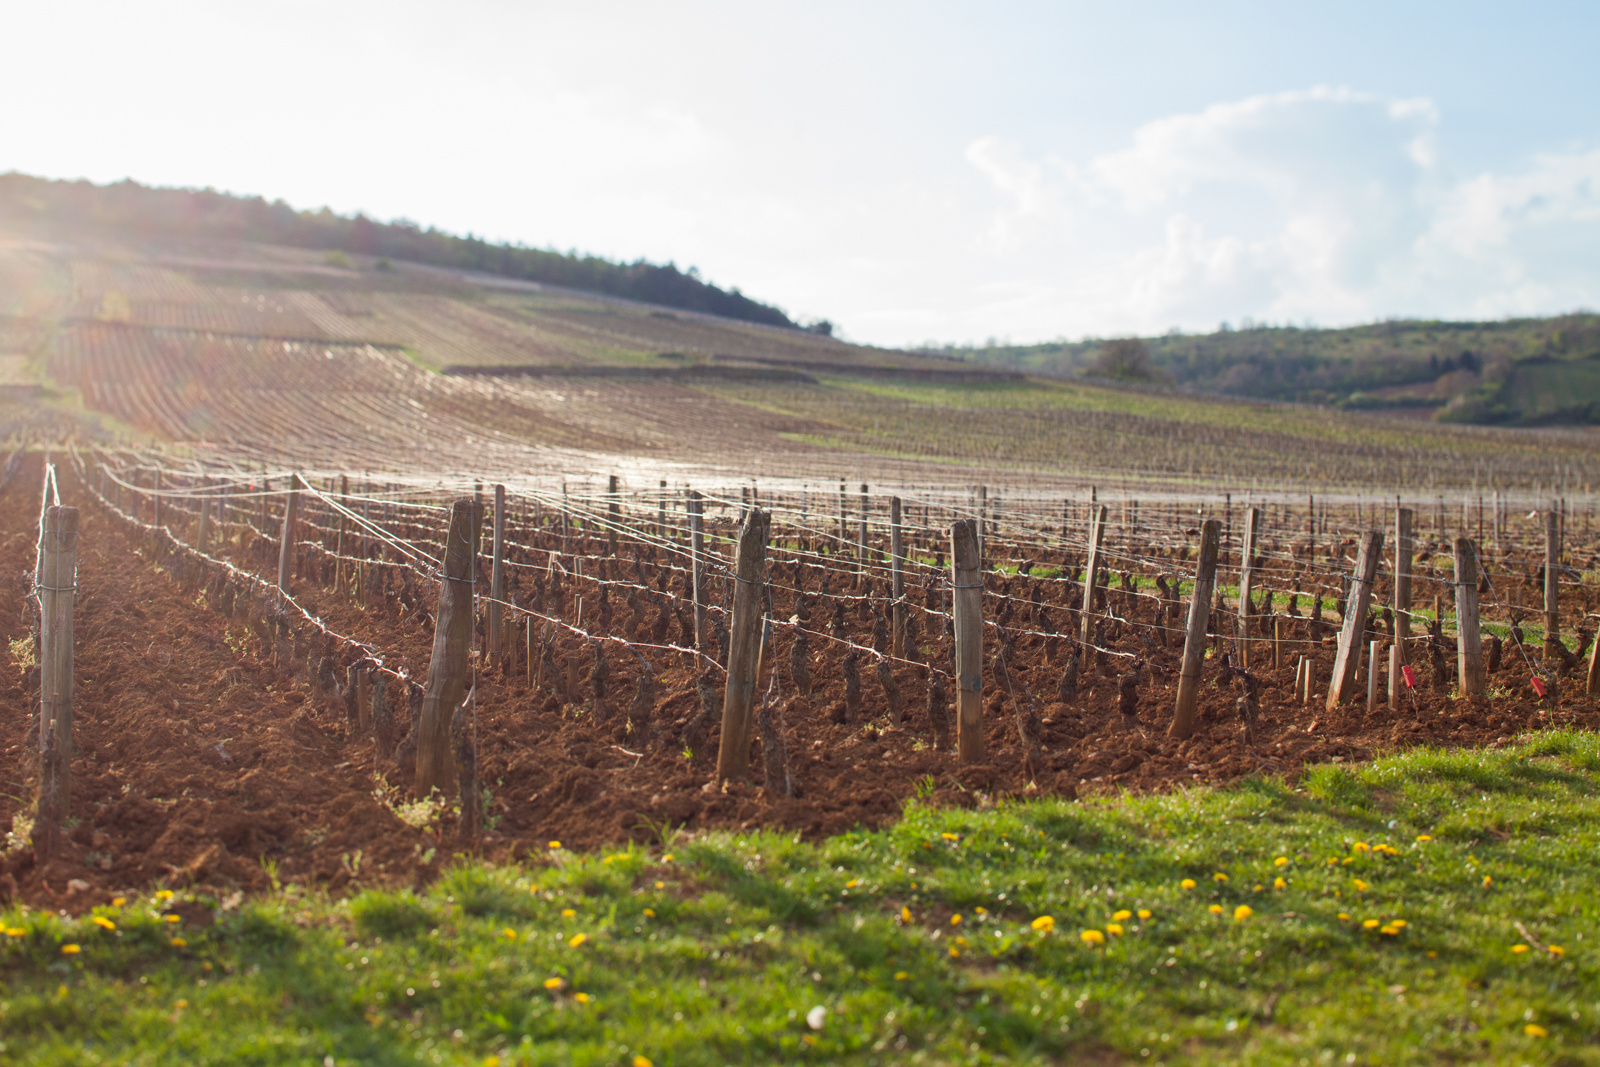 The vineyard of Romanée-Conti in the village of Vosne-Romanée, Burgundy, France. ©Kevin Day / Opening a Bottle